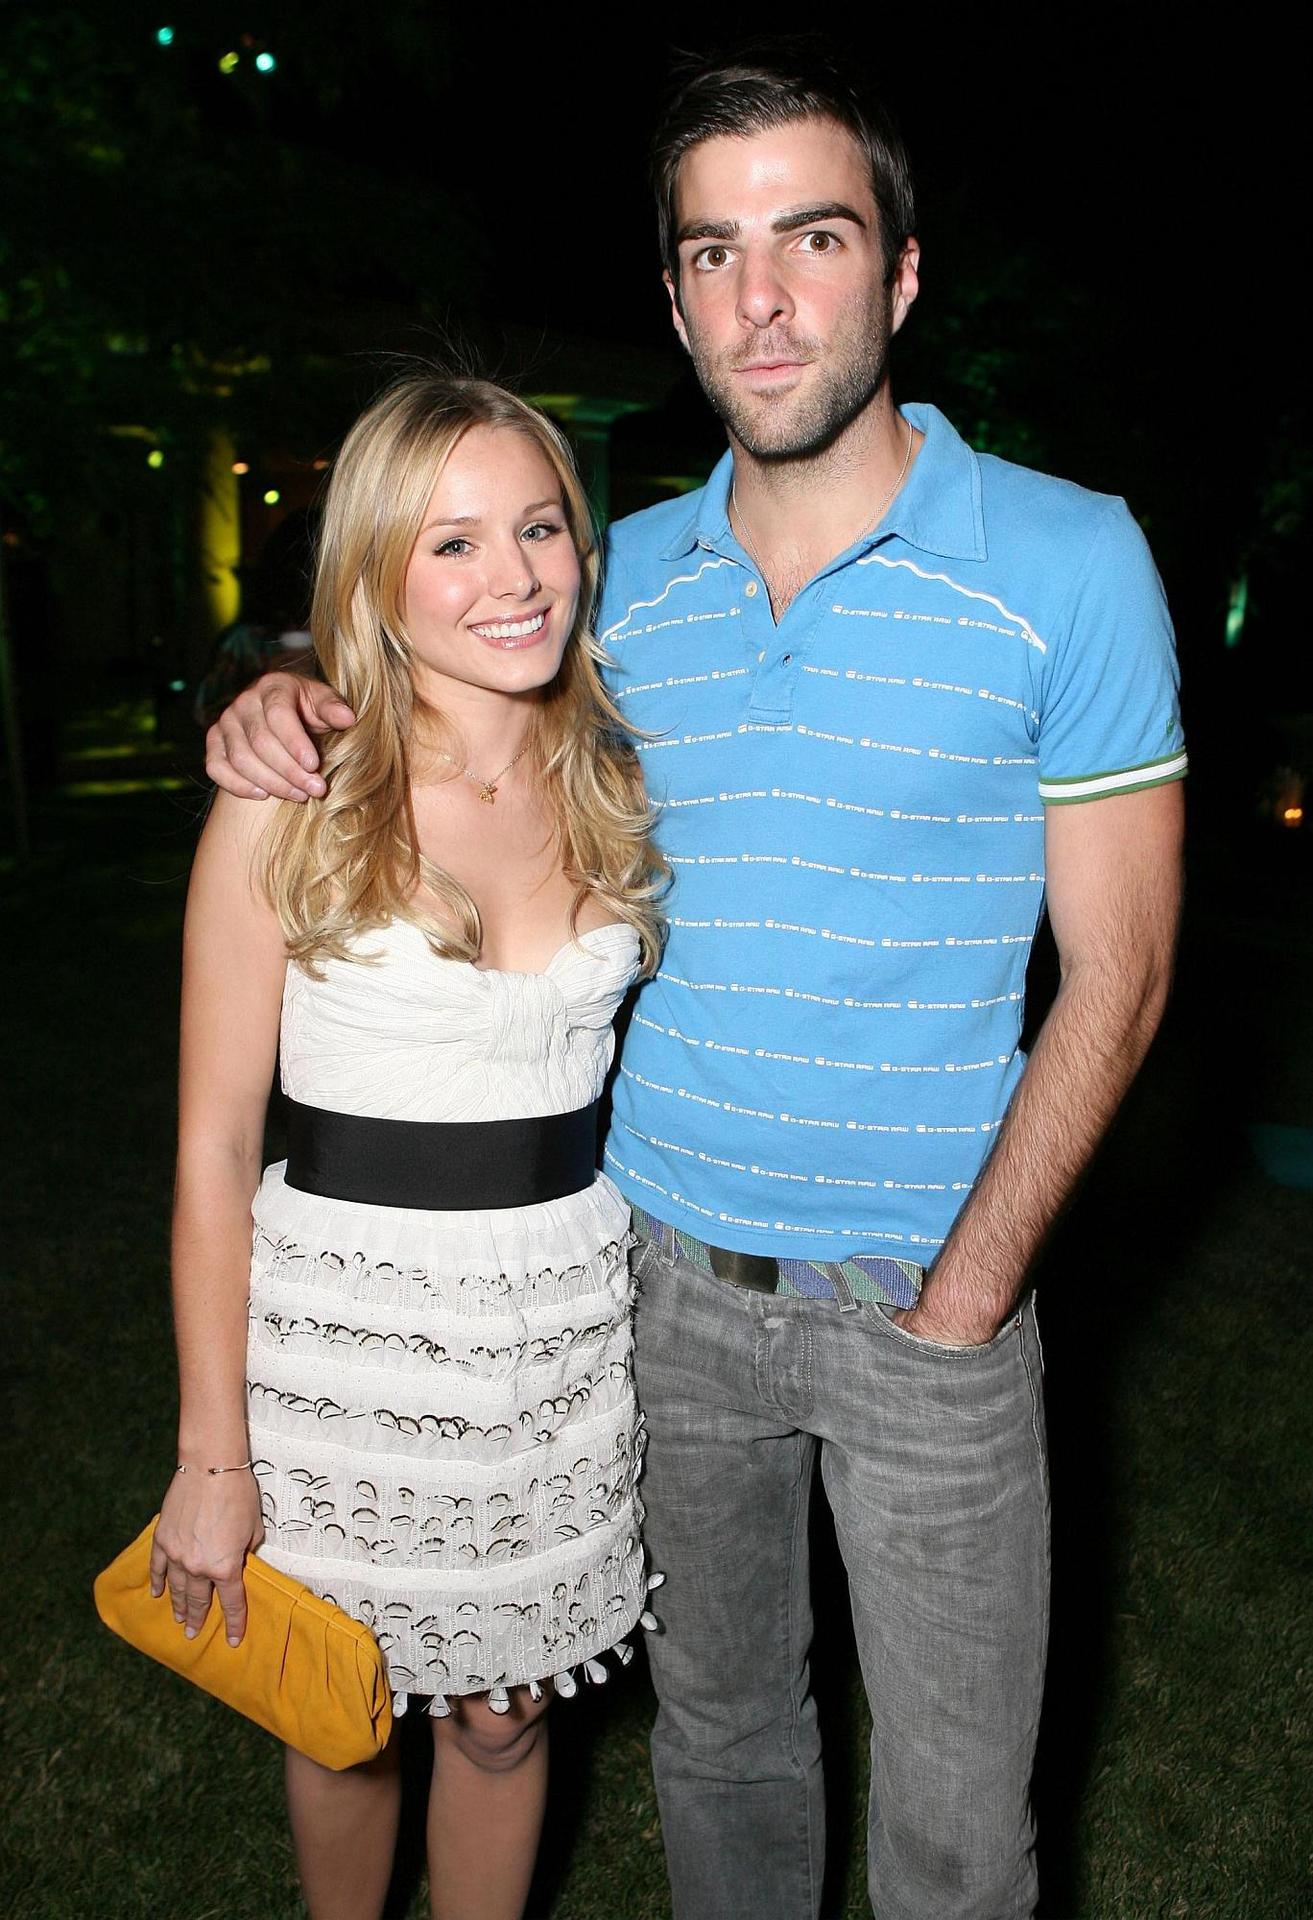 "bell dating Kristen bell can expect some hair-raising experiences as a new member of the cast of nbc's heroes this season – but what frightens the actress in real life is the singles scene ""dating is scary,"" bell, 27, tells people while also revealing that she and her boyfriend, film producer kevin ."